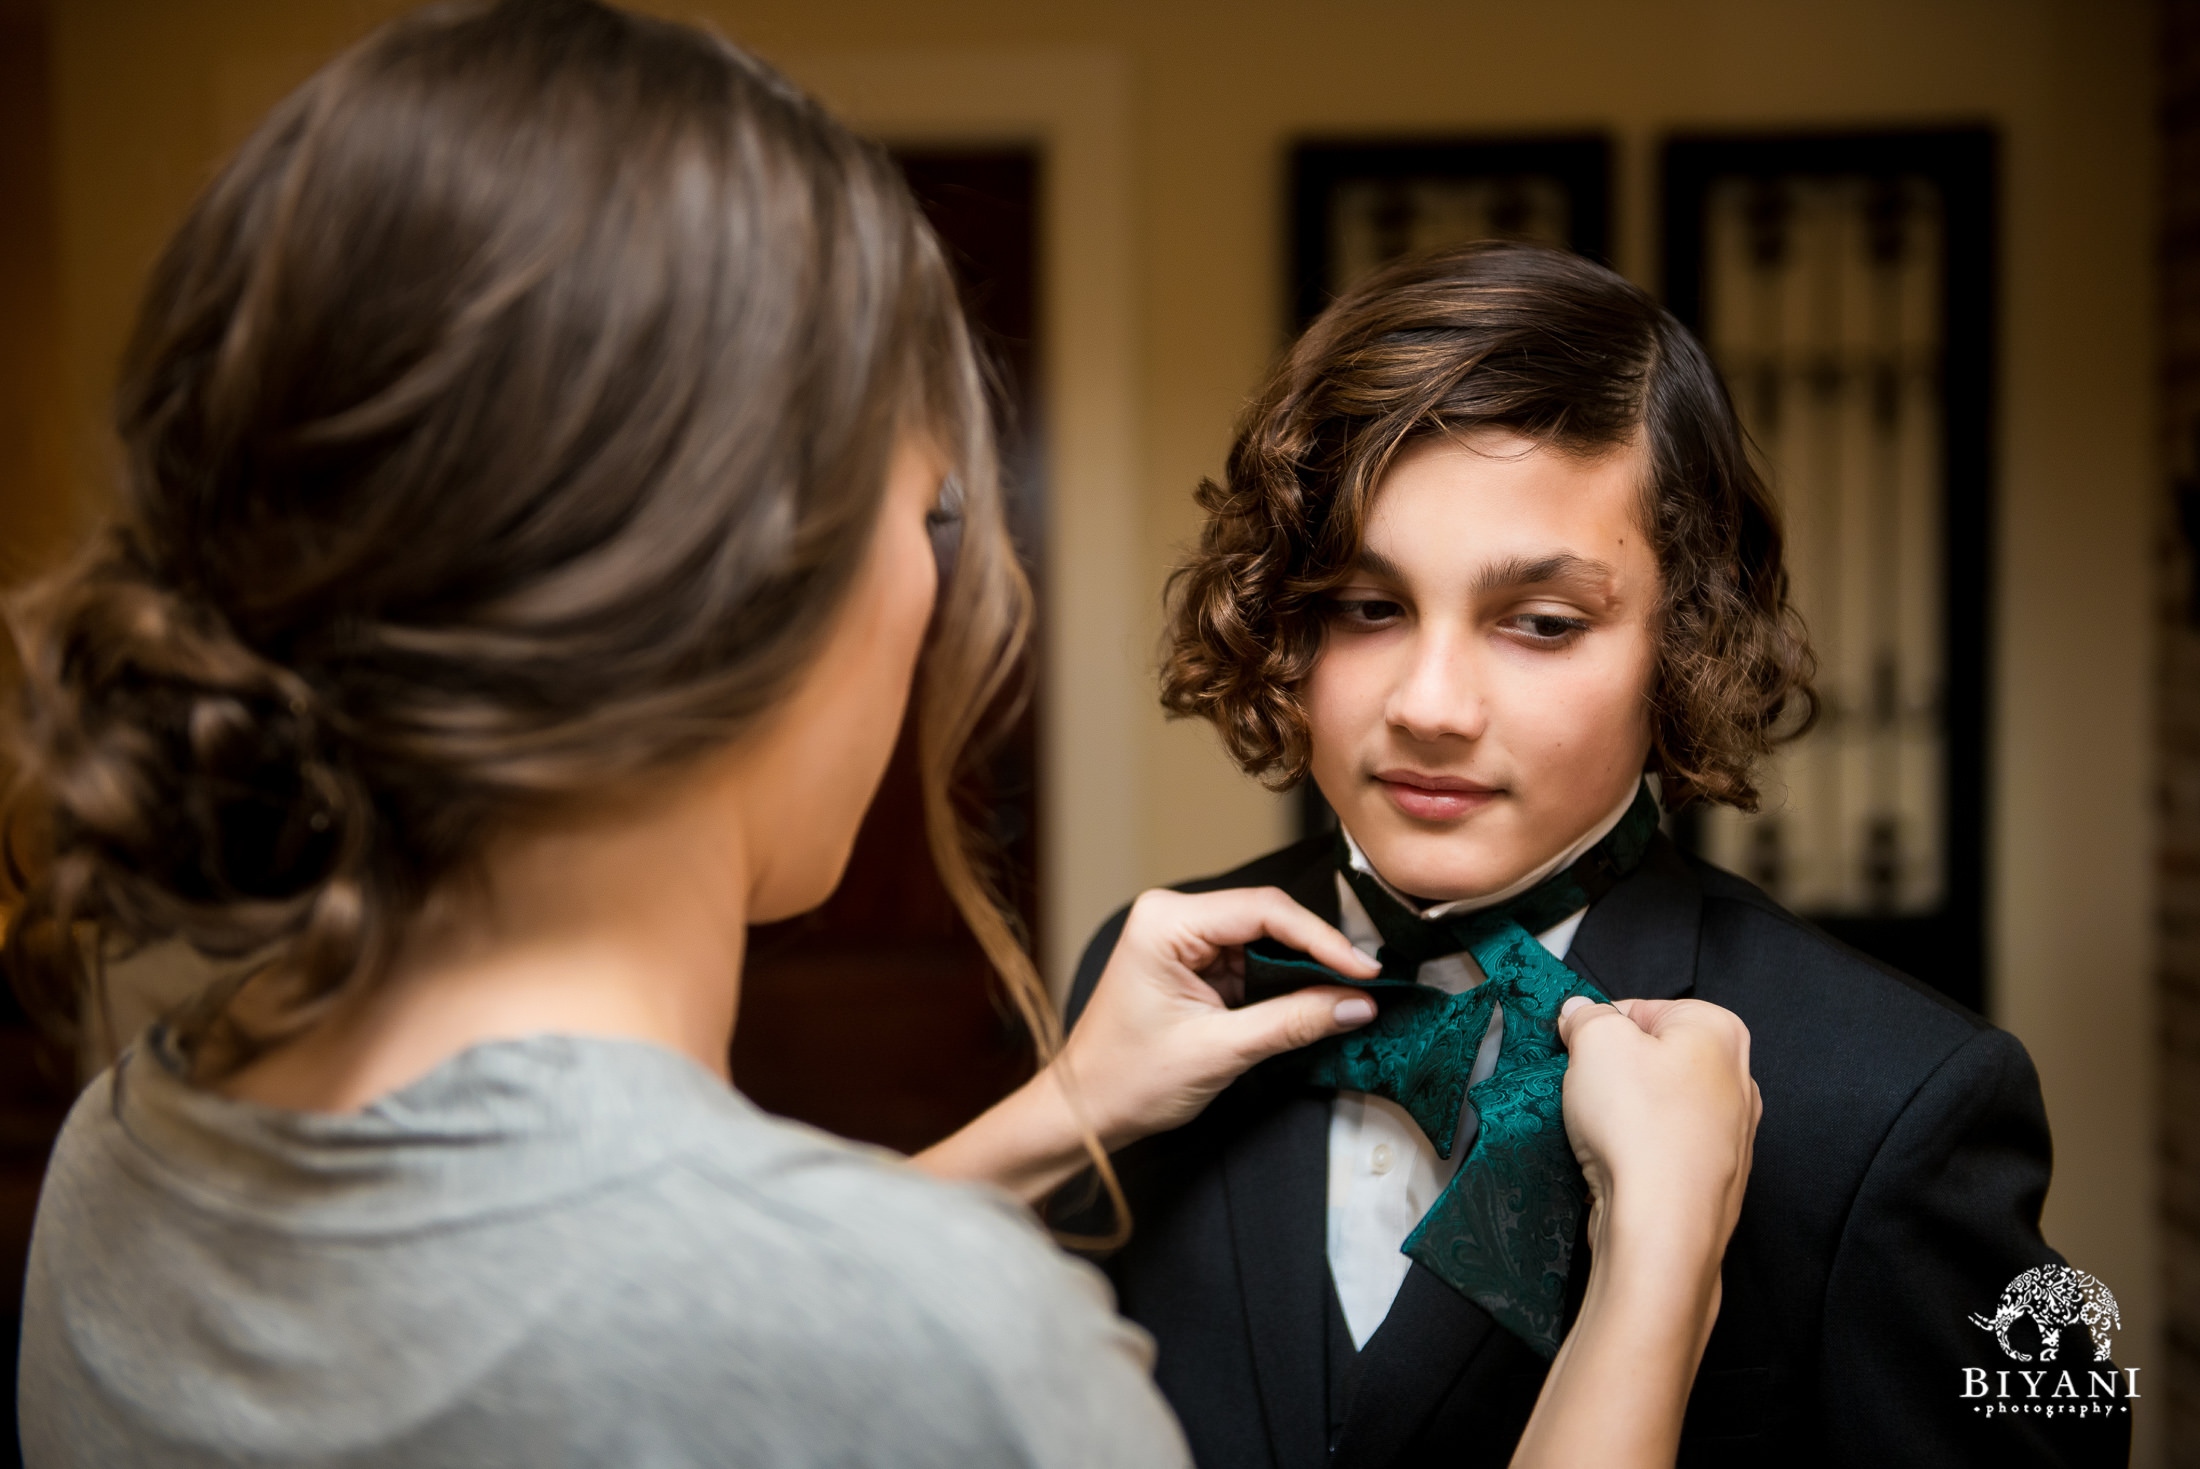 Bride tying the ring bearer's bow tie